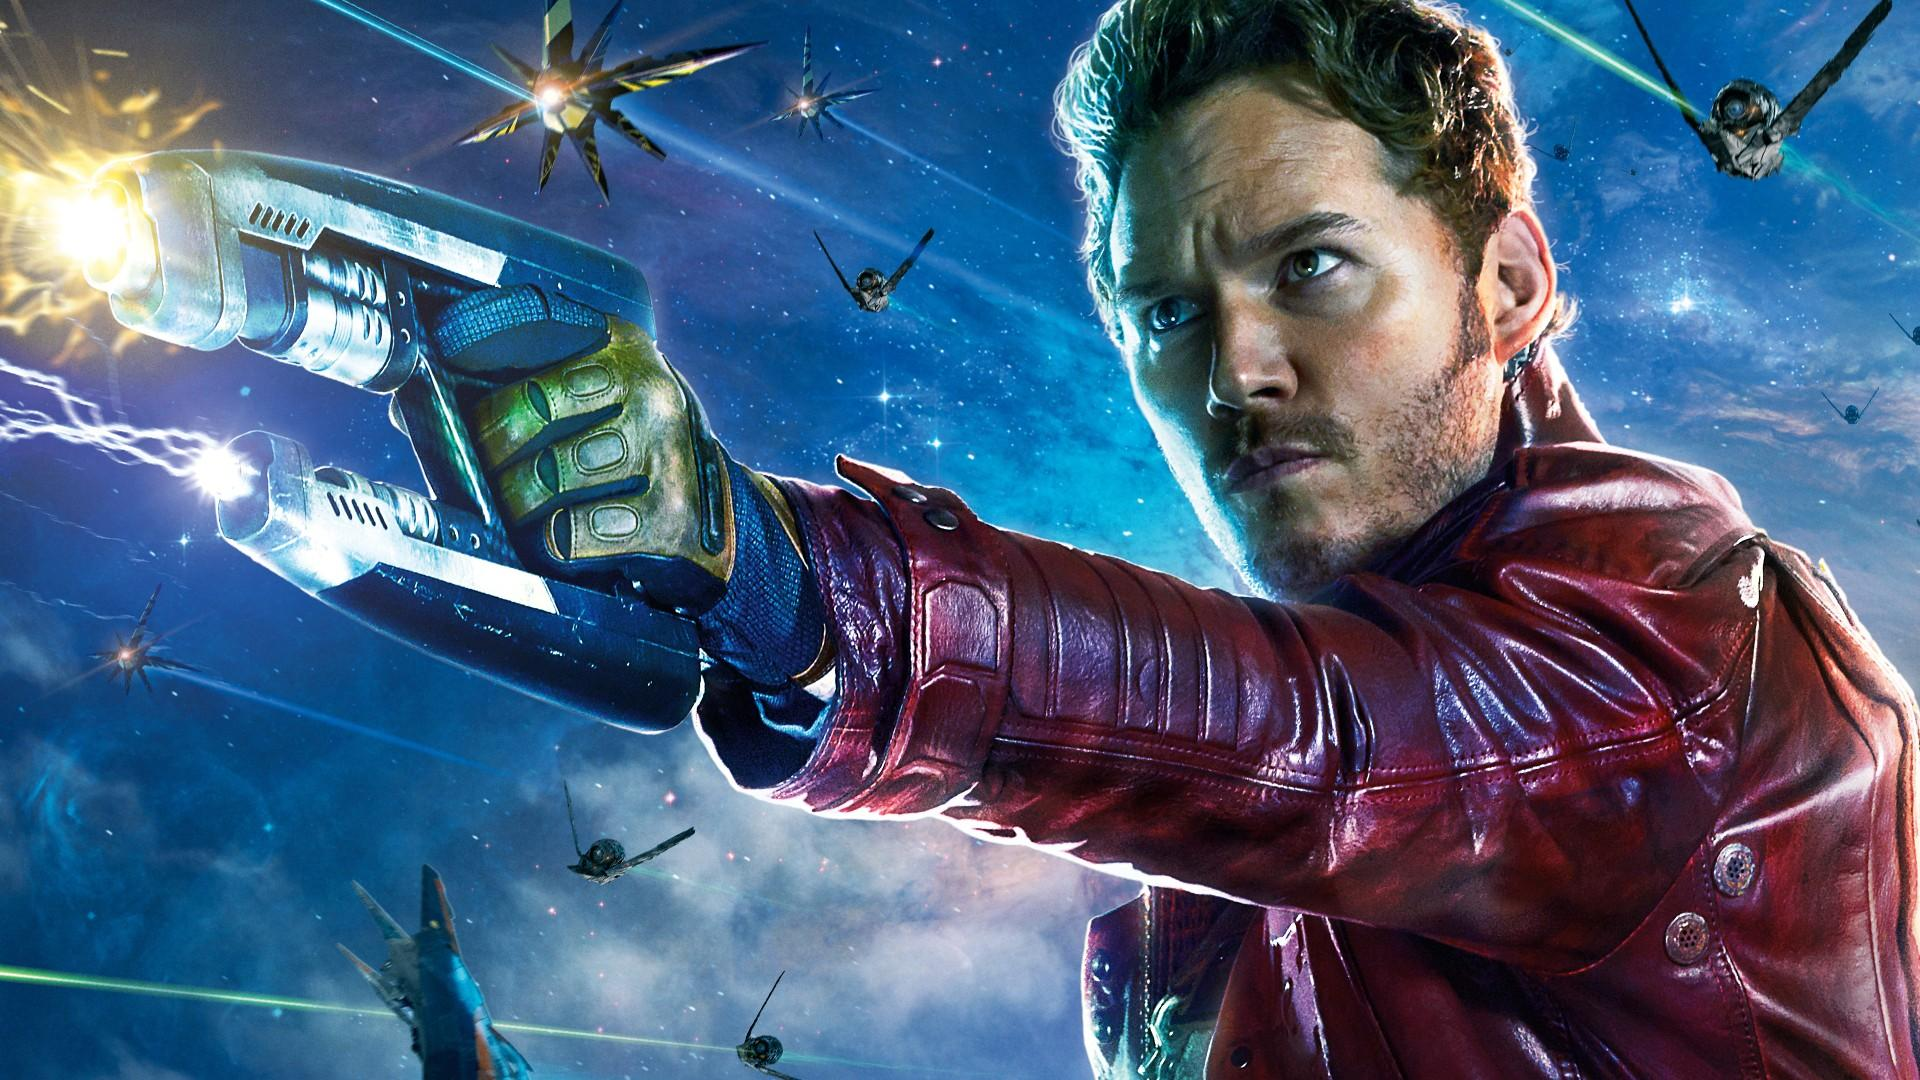 Guardians Of The Galaxy Wallpapers HD Download 1920x1080